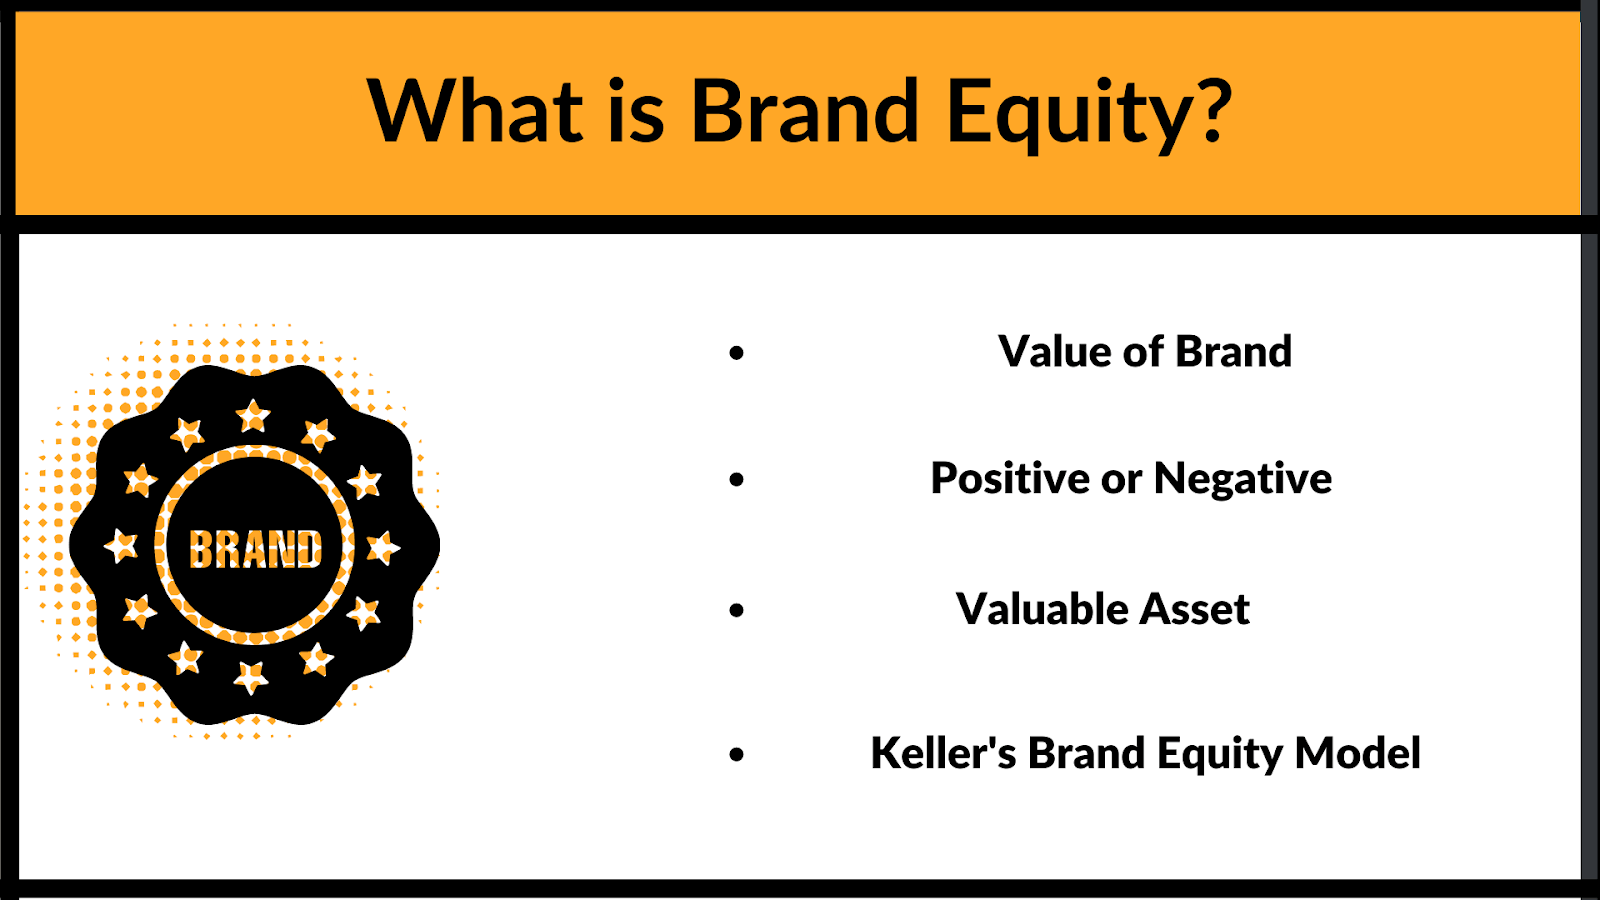 What is Brand Equity? What are the facets of it